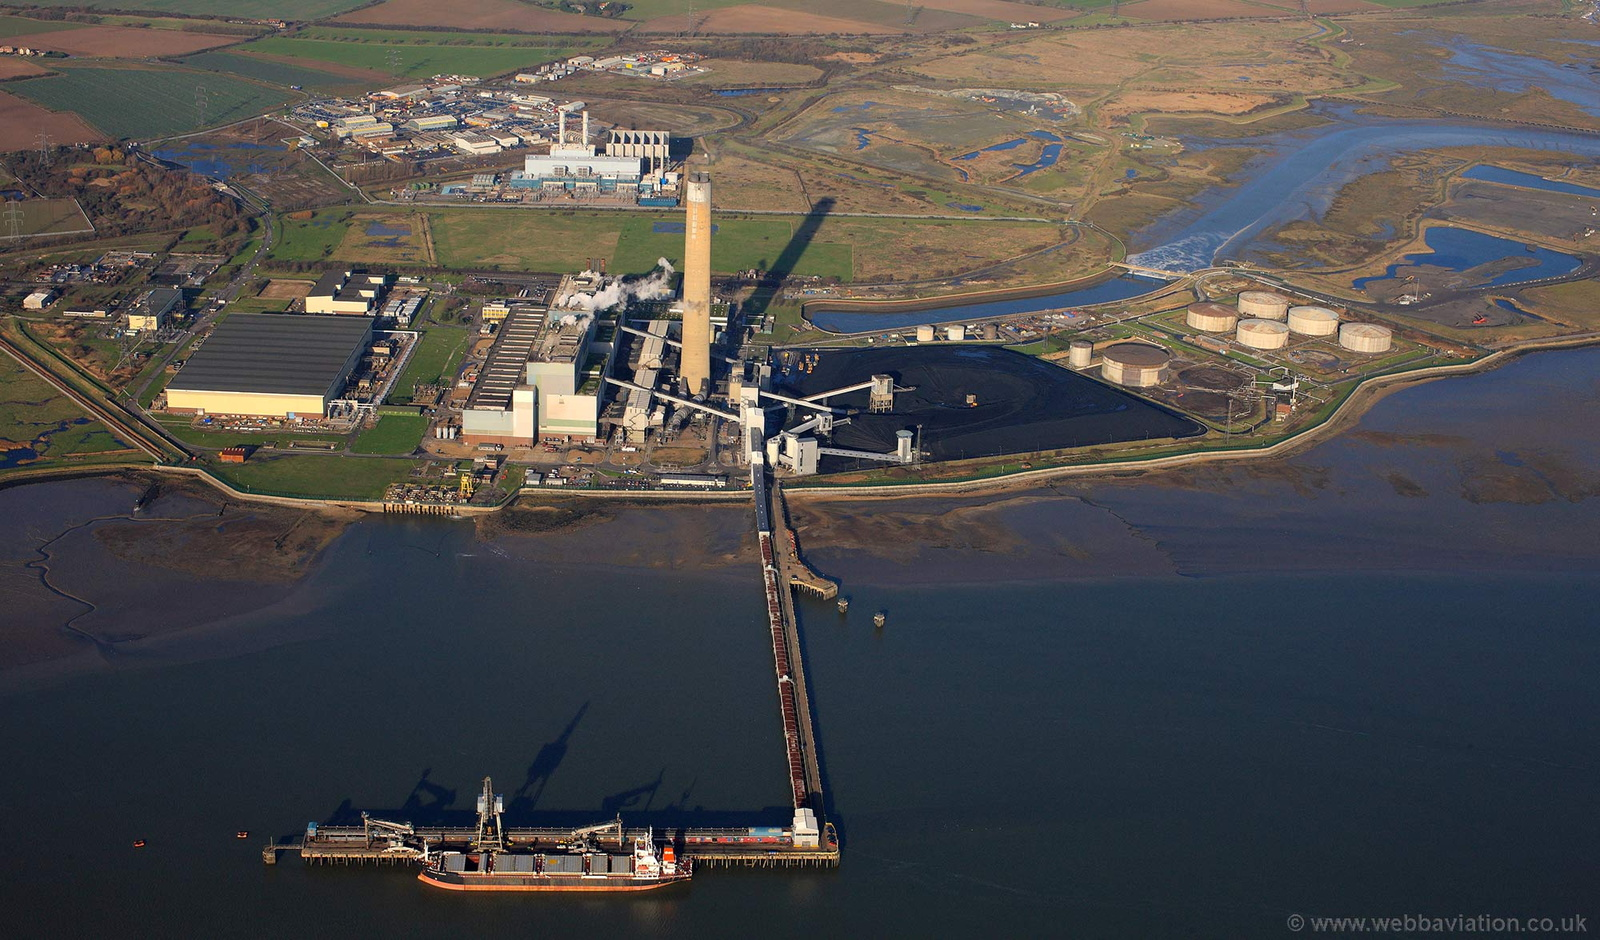 Kingsnorth power station from the air